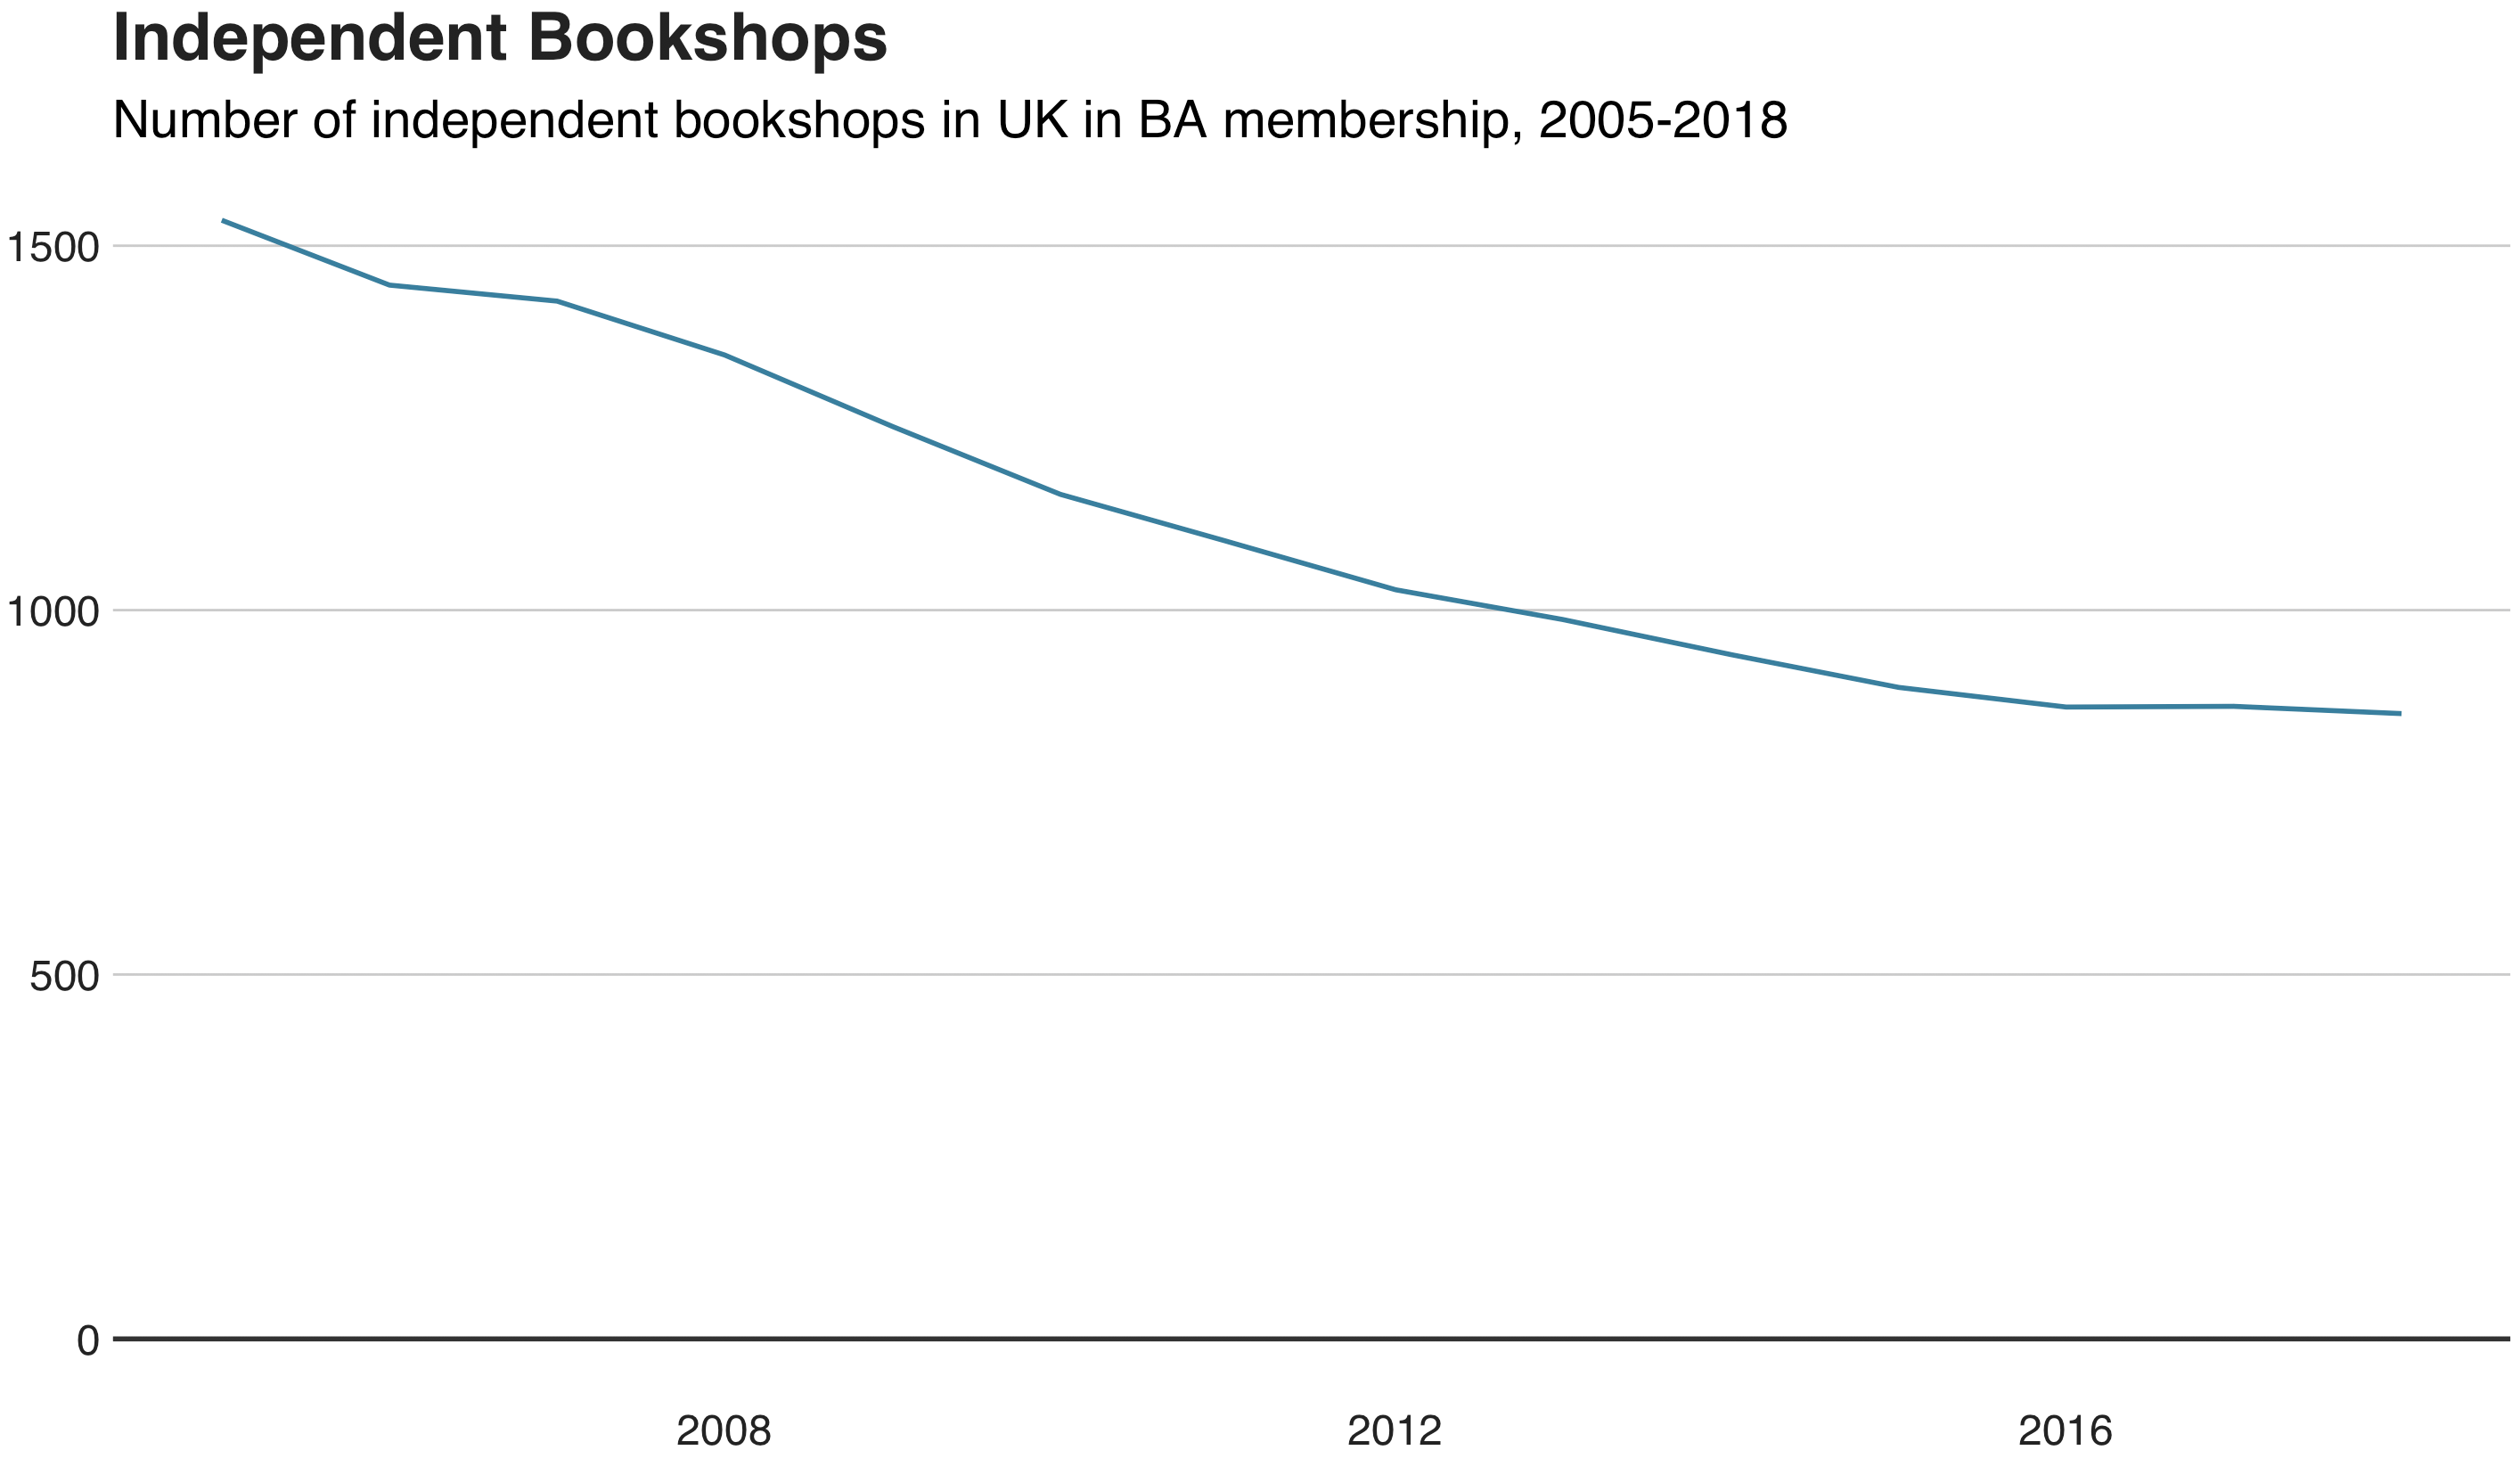 Data source: Written evidence submitted by the Booksellers Association.  Created with bbplot.